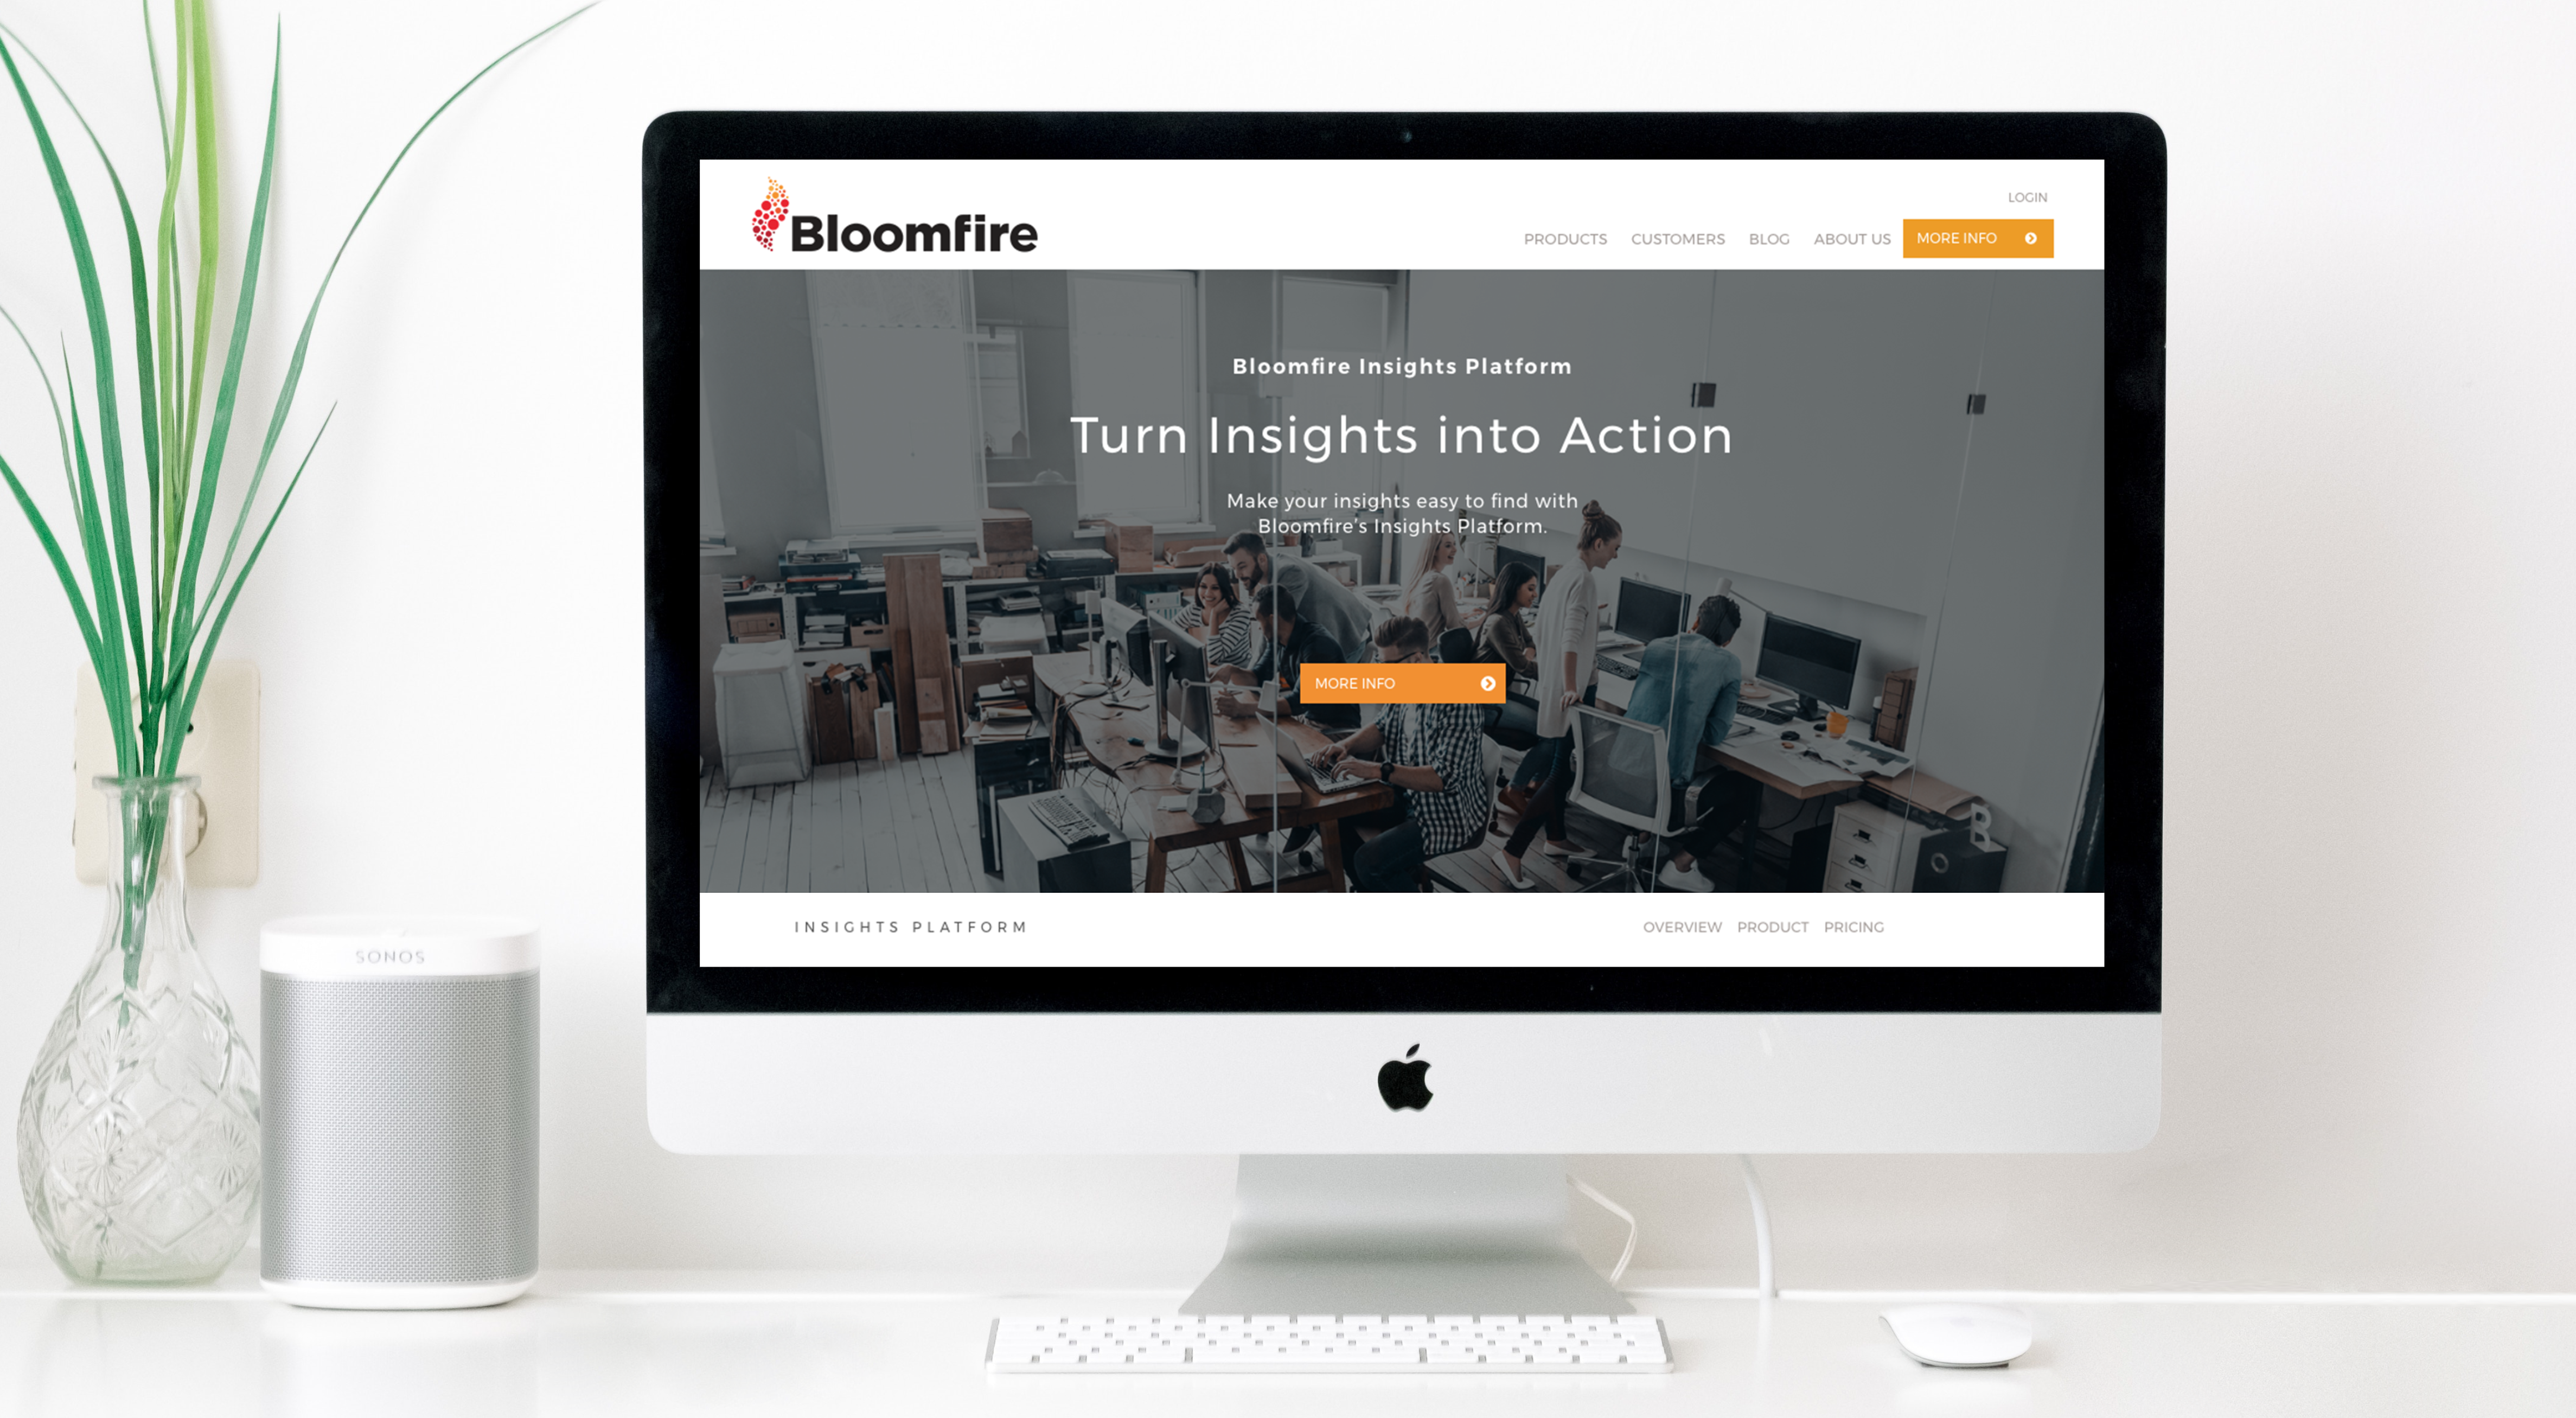 Bloomfire Website Design and HubSpot Work by H&C Inc.